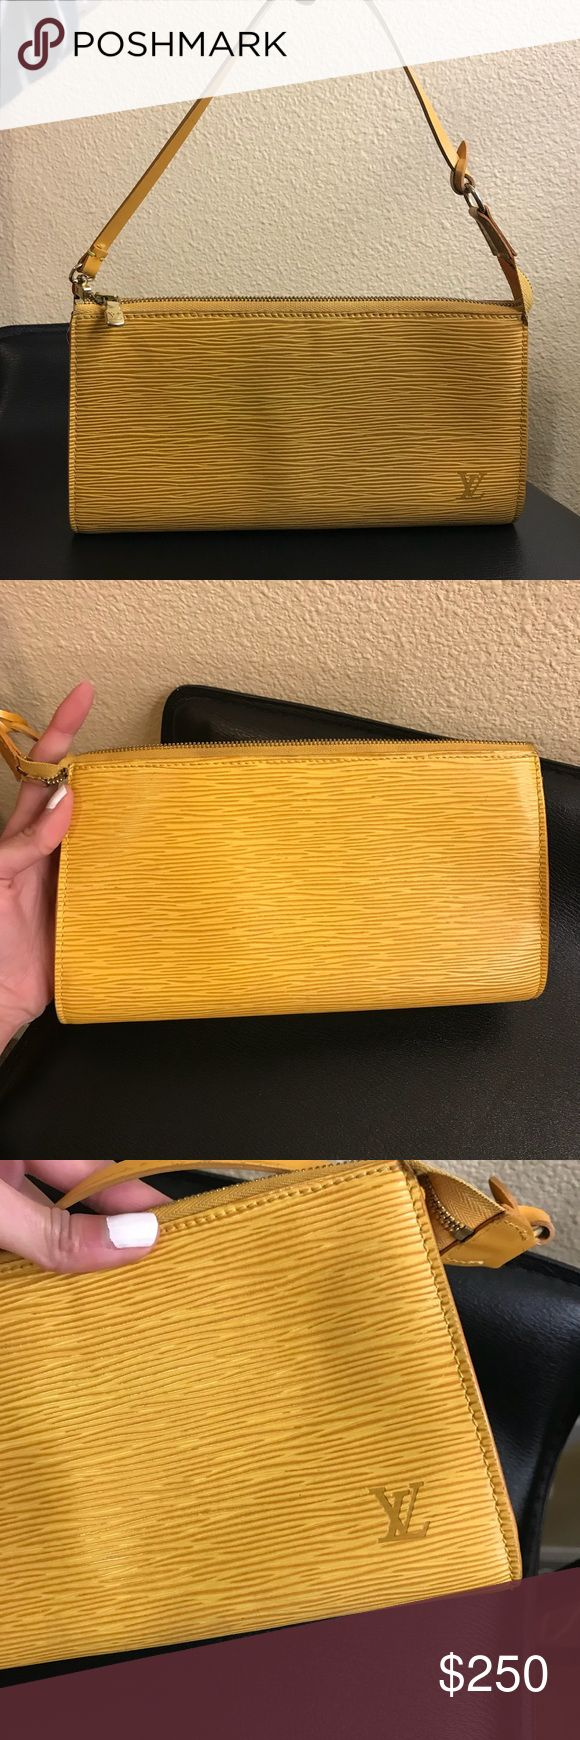 Louis Vuitton Purse 💯 % Authentic Mustard yellow Louis Vuitton Purse! Worn a few times! Has scratches on the strap of the purse and a tiny mark on the zipper (which I believe can be cleaned with purse cleaner). Selling at a low price because I am trying to get rid of it ASAP! Louis Vuitton Bags Mini Bags